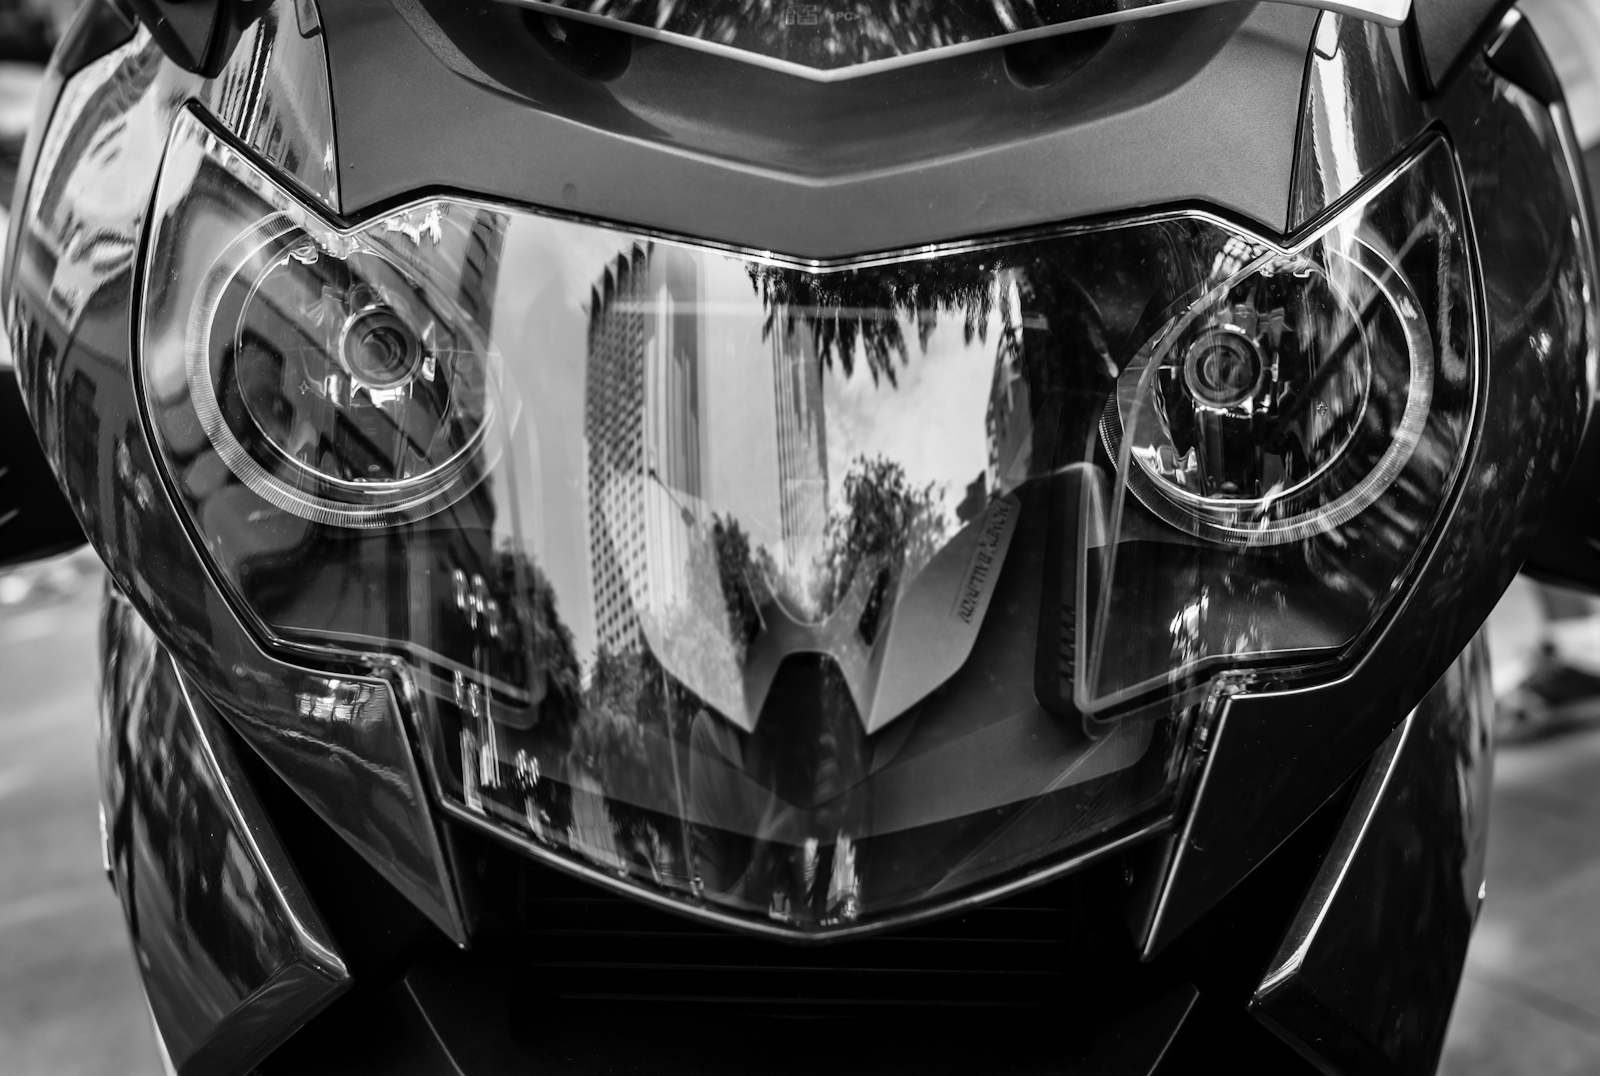 Headlights of a motorcycle